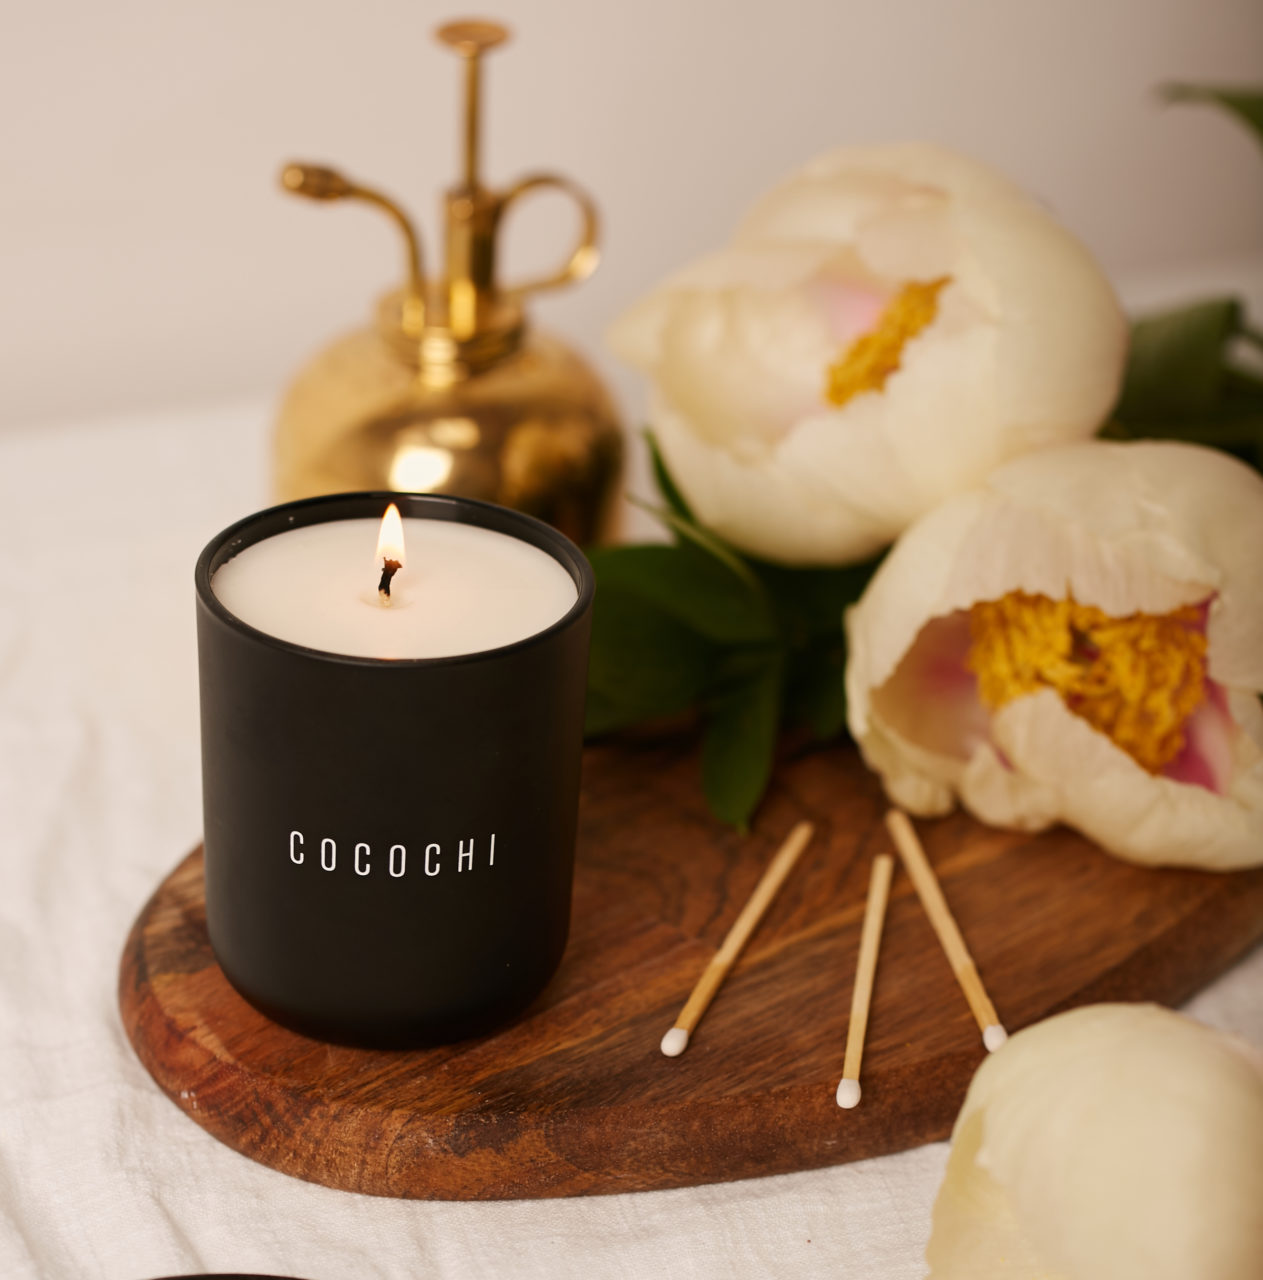 Spotlight on... Cocochi